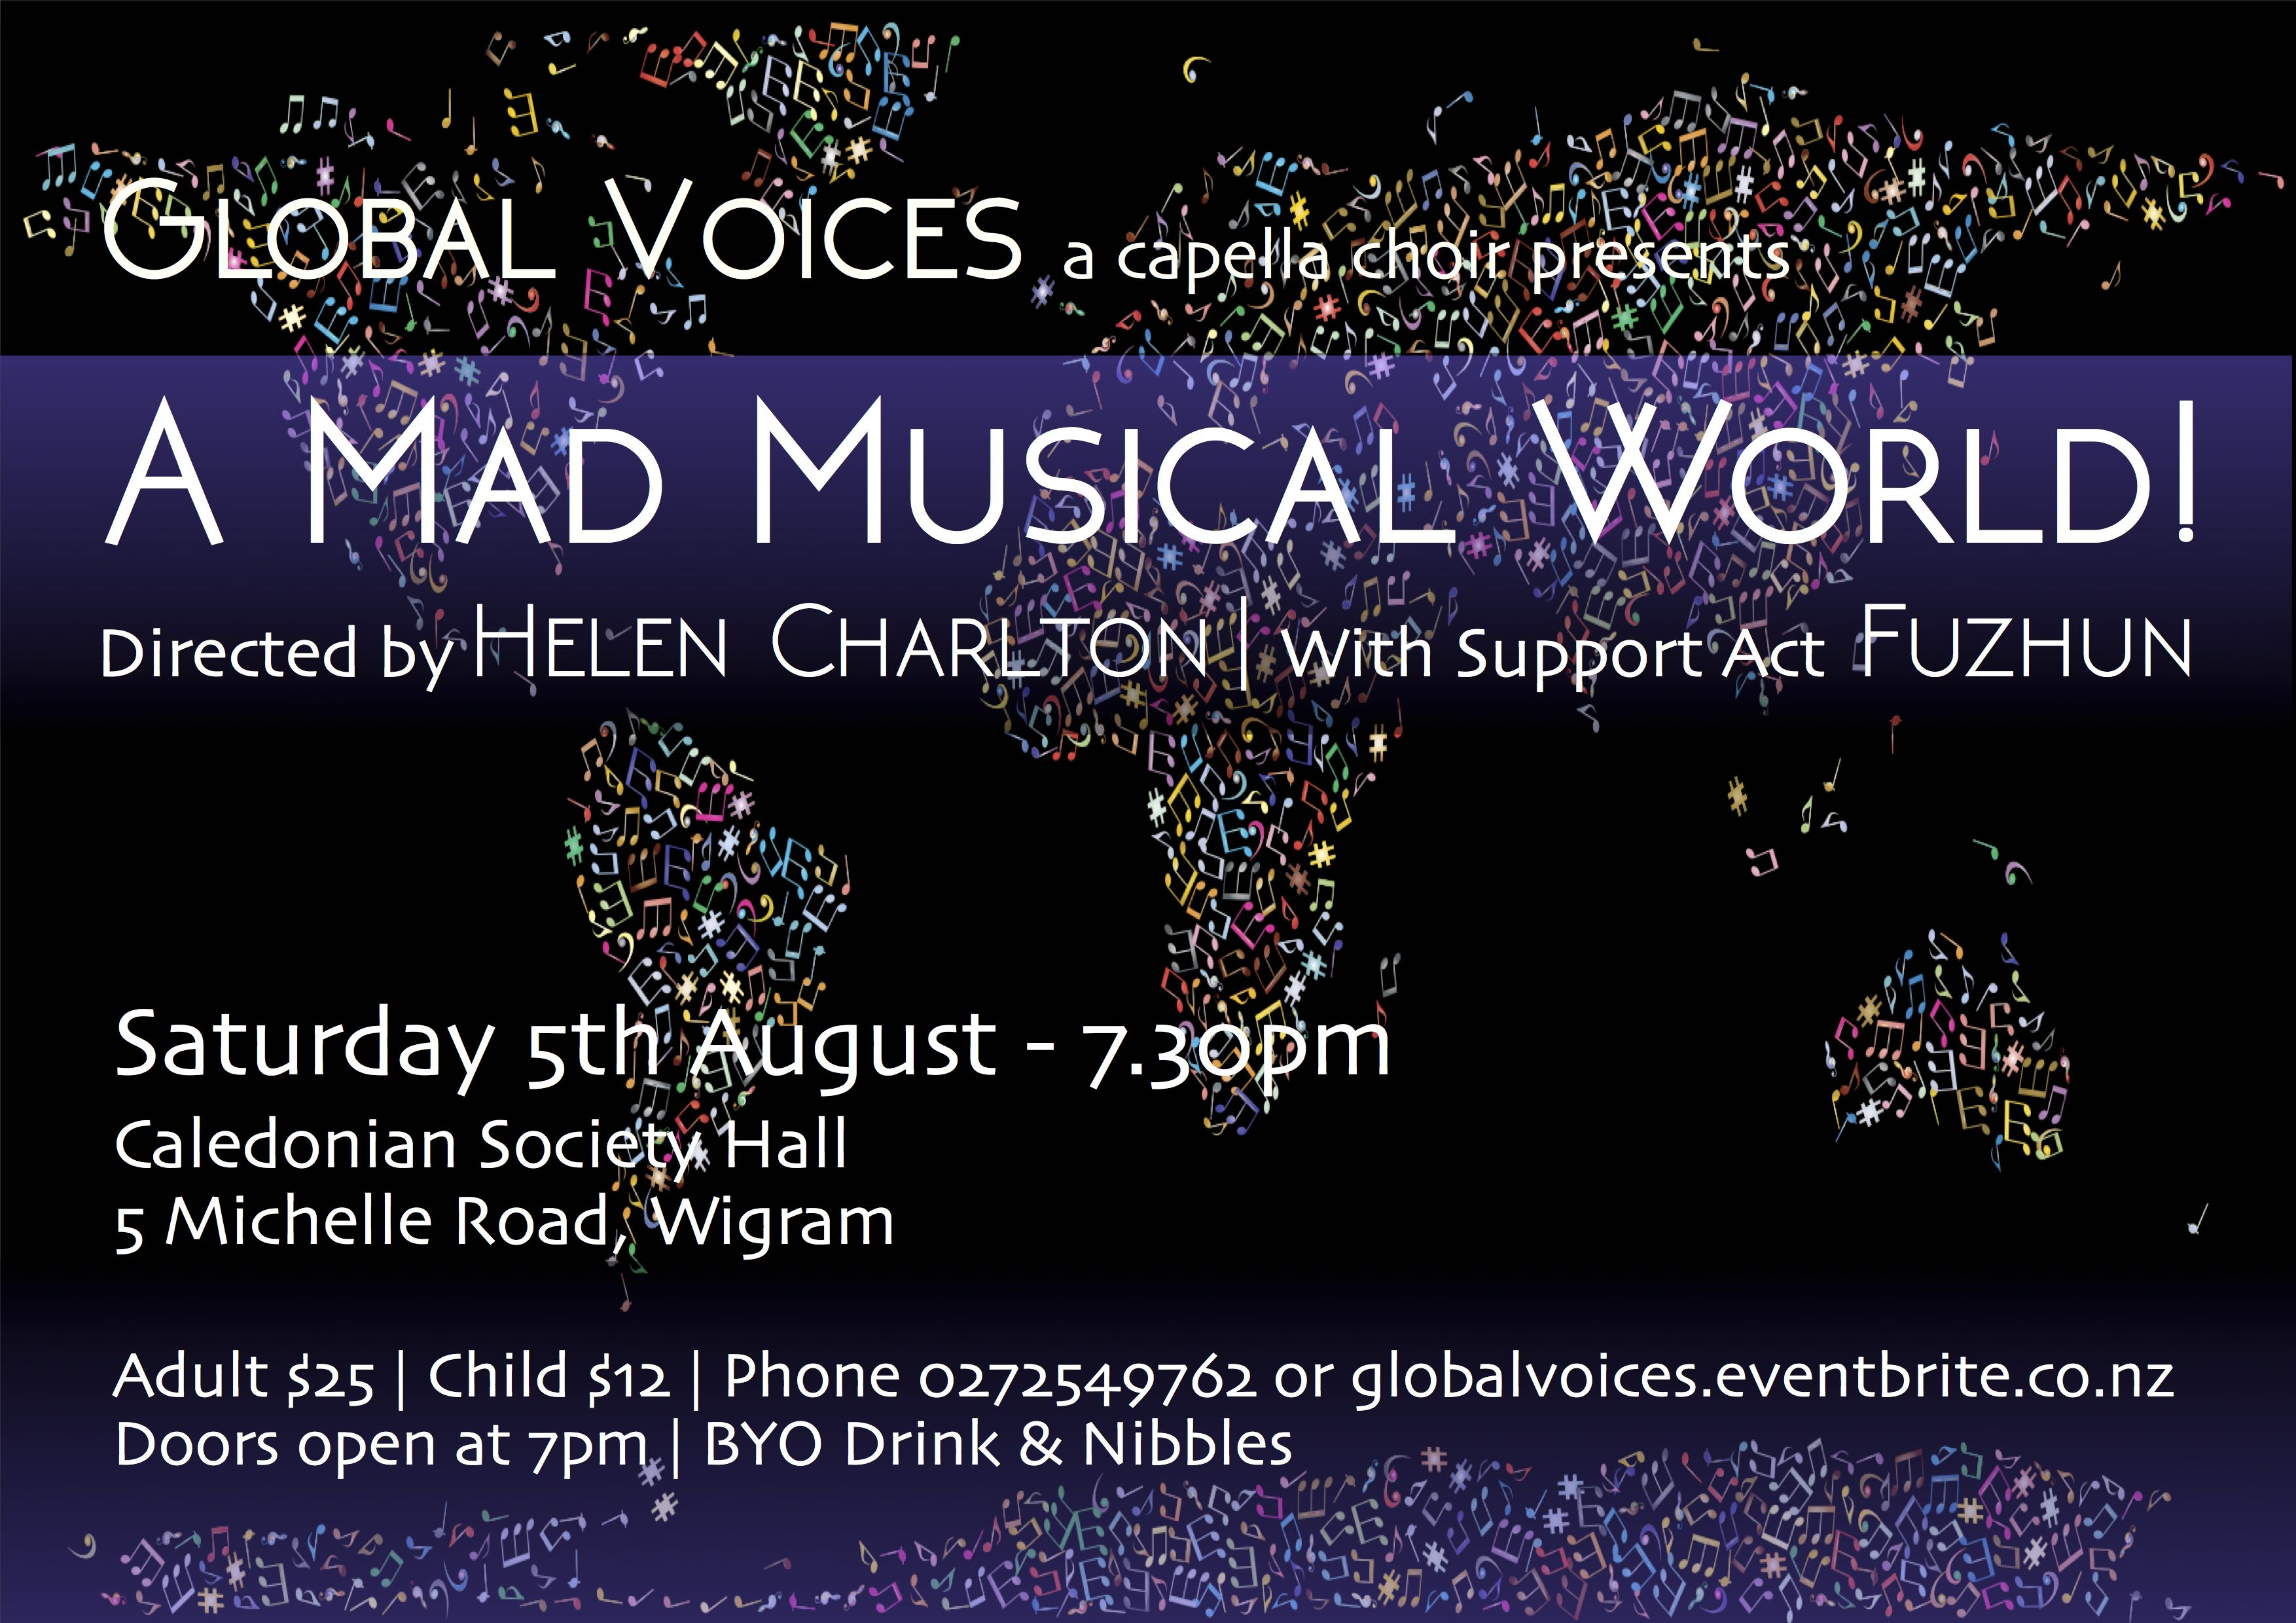 Global Voices Presents: A Mad Musical World